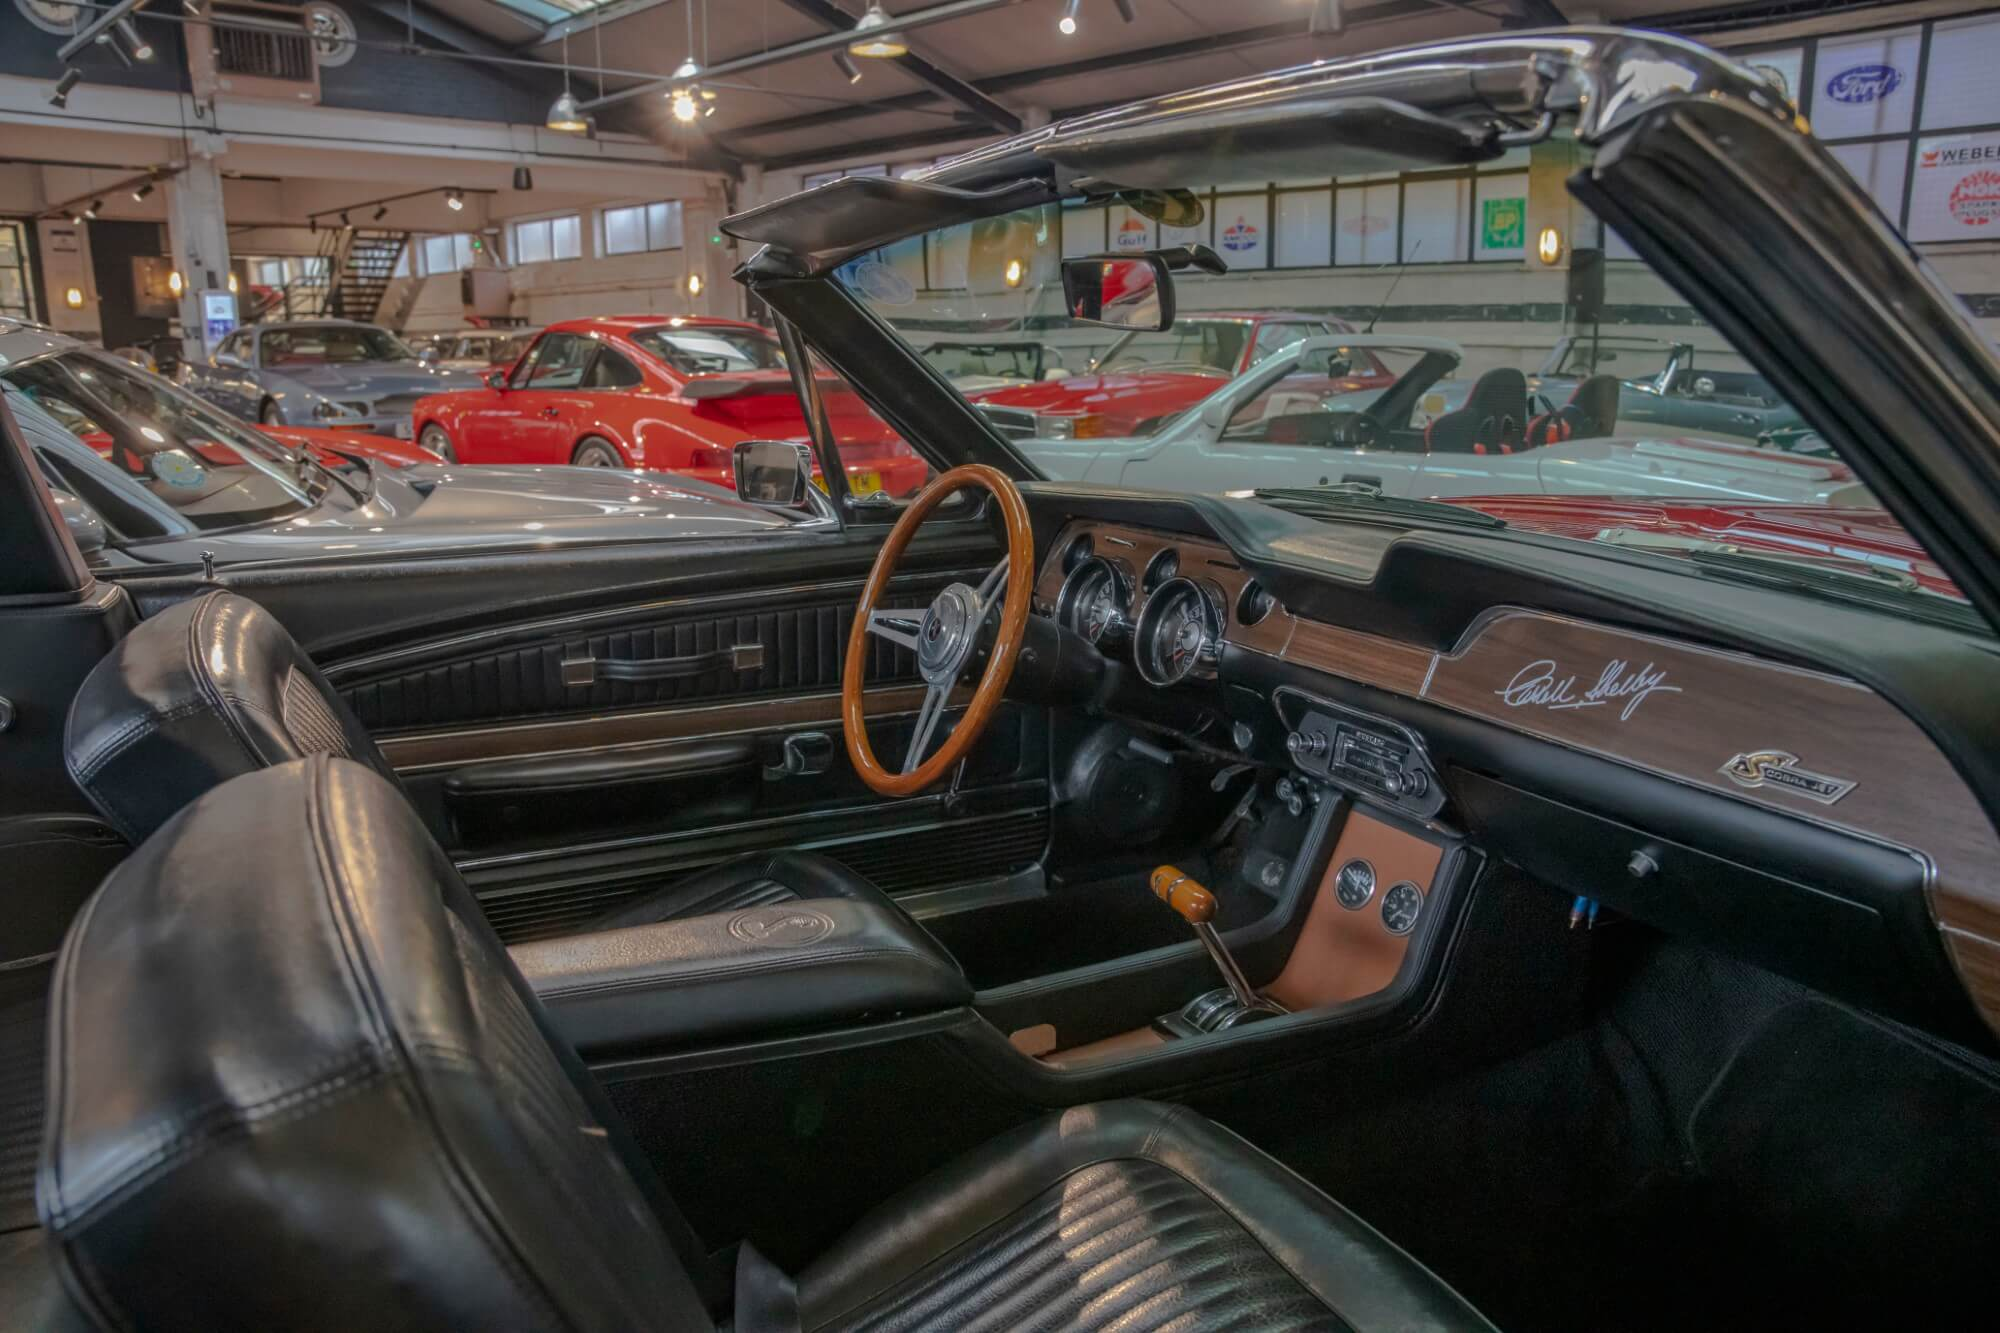 Come And Visit Our Showroom Of Classic Cars Today - Fairmont Sports and Classics Ltd